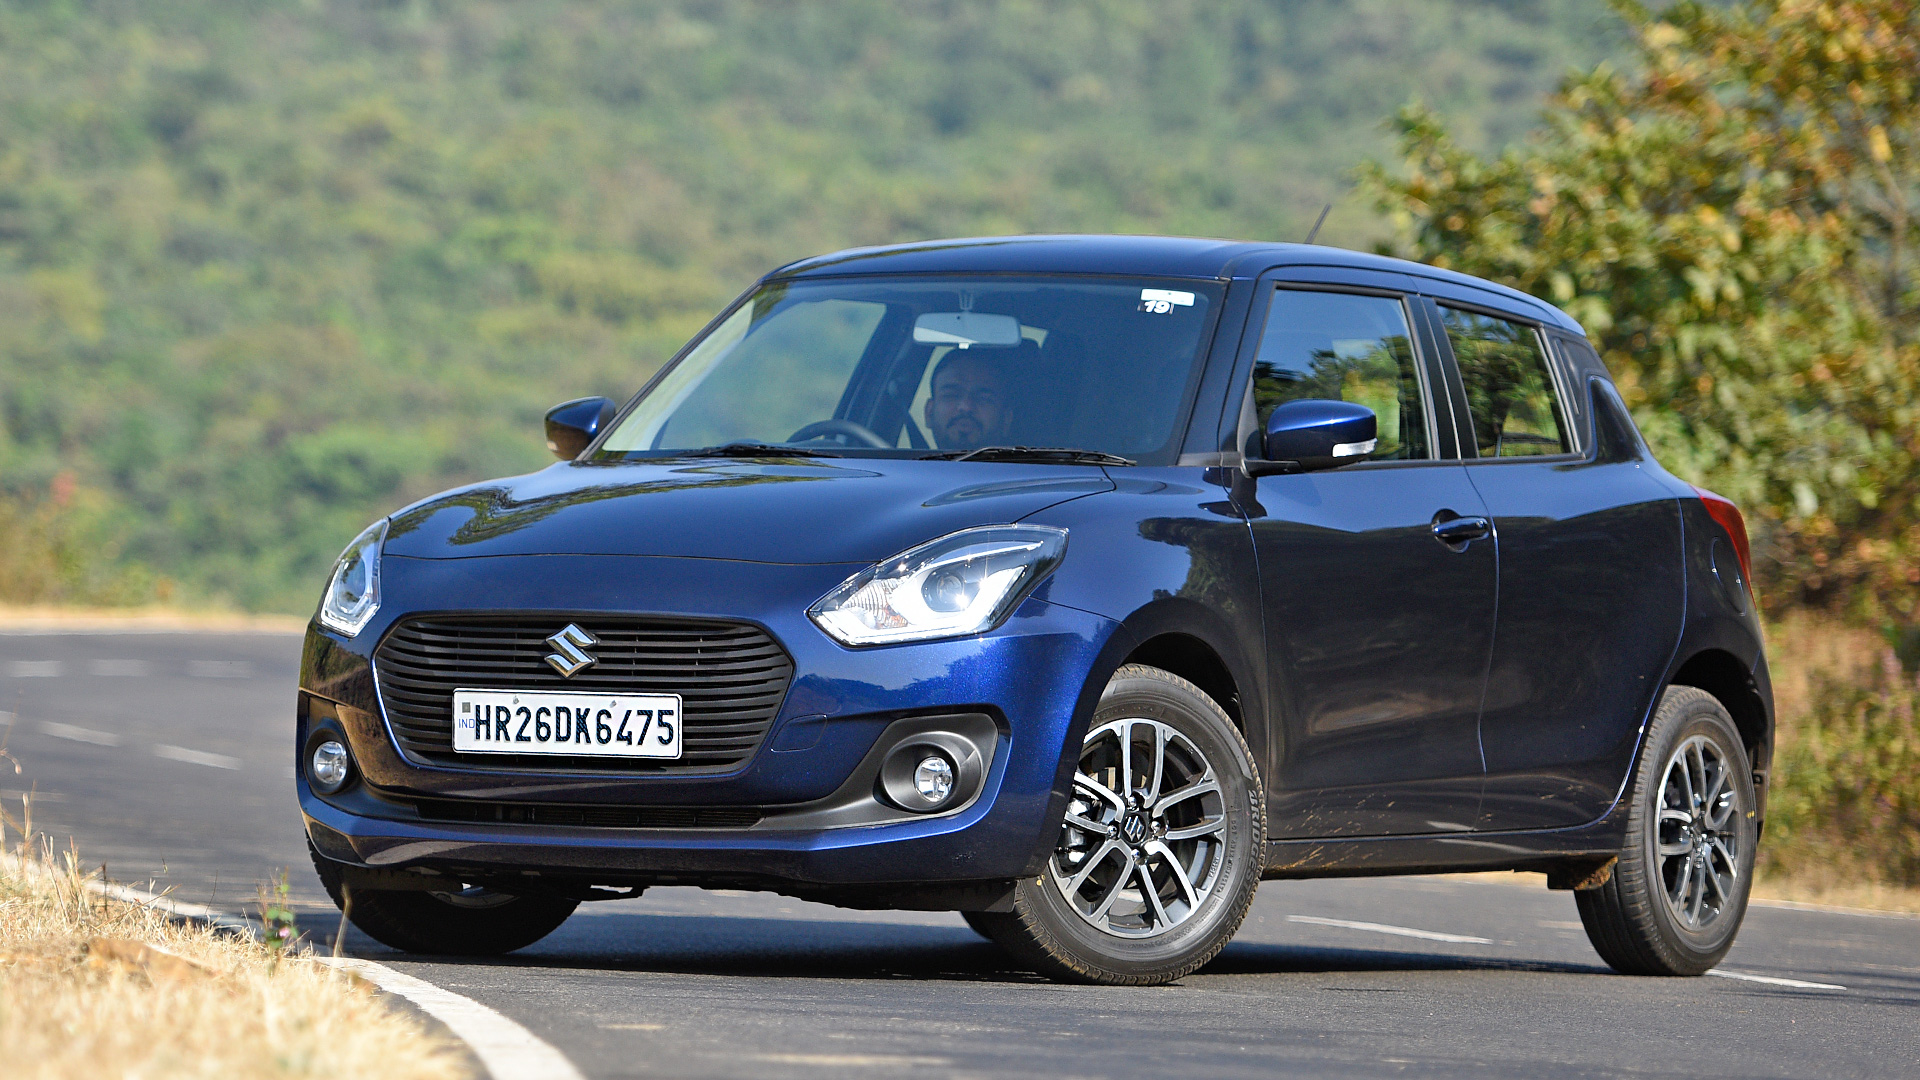 Maruti Suzuki Swift 2018 Zdi Exterior Car Photos Overdrive